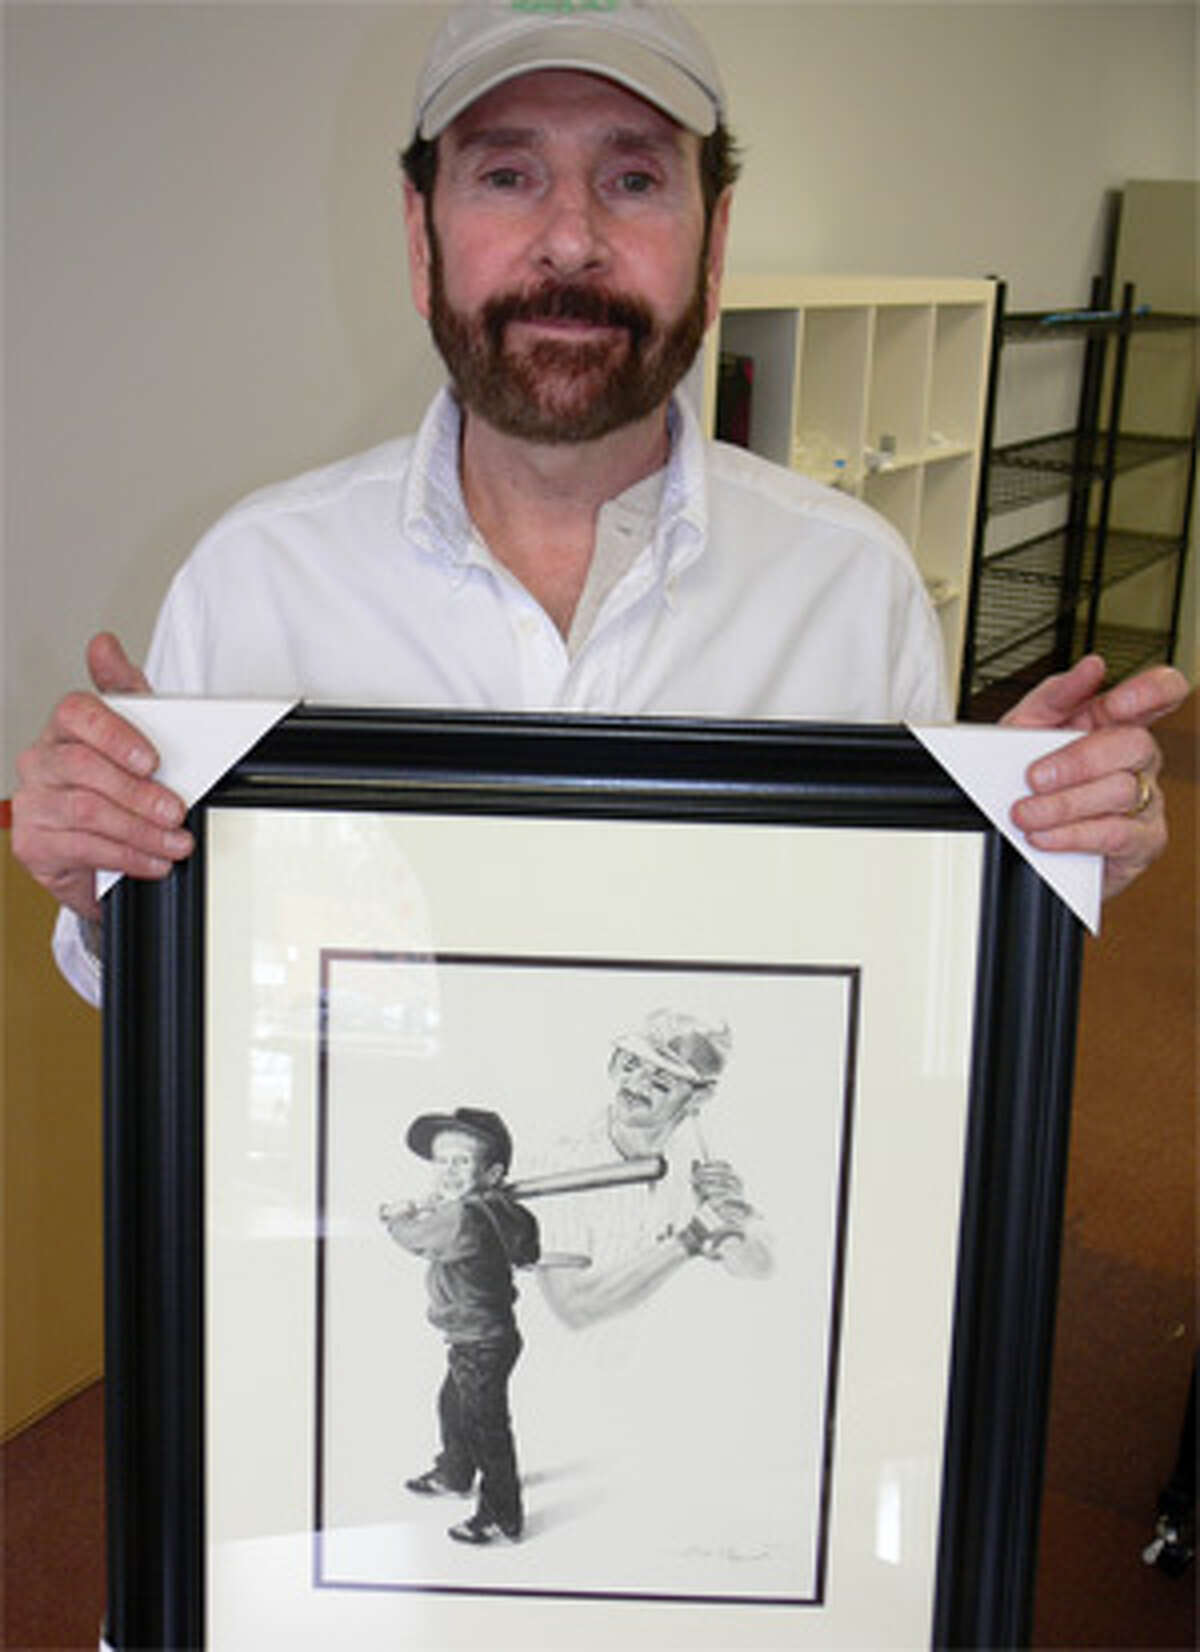 Bob Boroski holds a framed drawing he did many years ago of his son and Yankee player Don Mattingly.